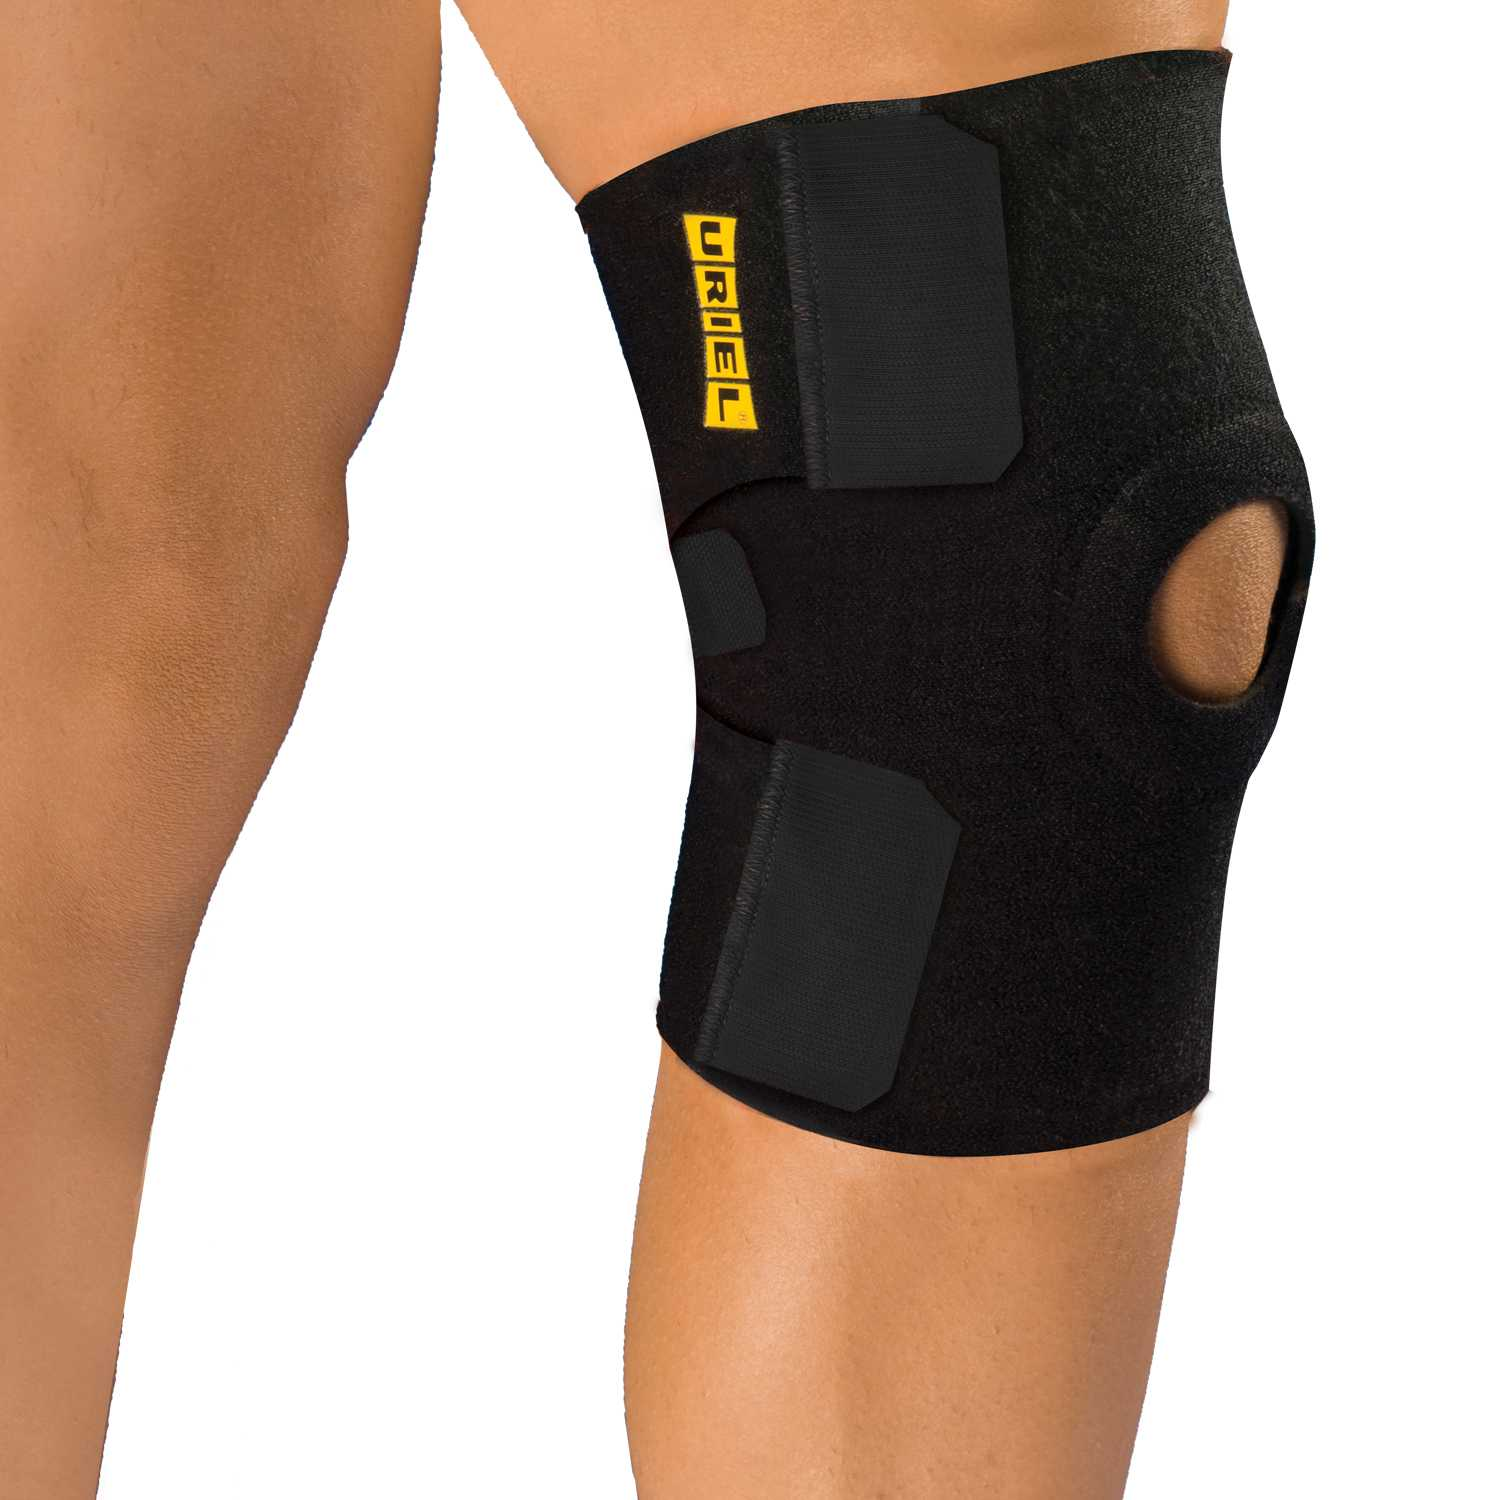 KNEE SUPPORT OPEN URIEL ONE SIZE